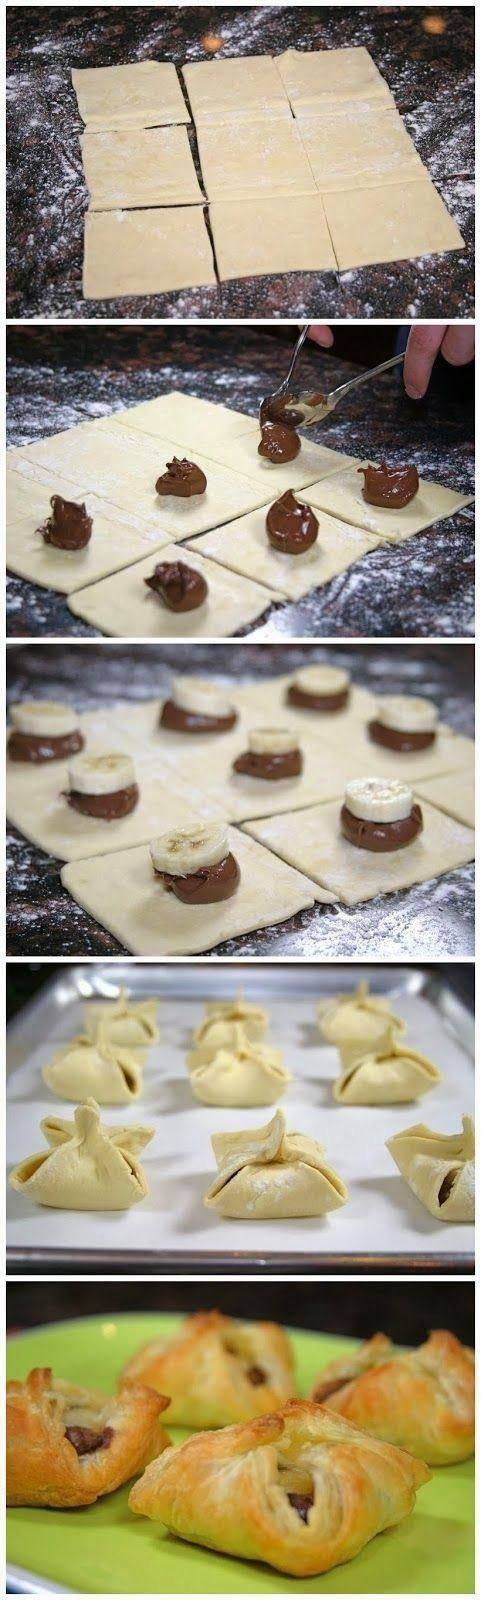 Nutella and Banana Pastry Purses